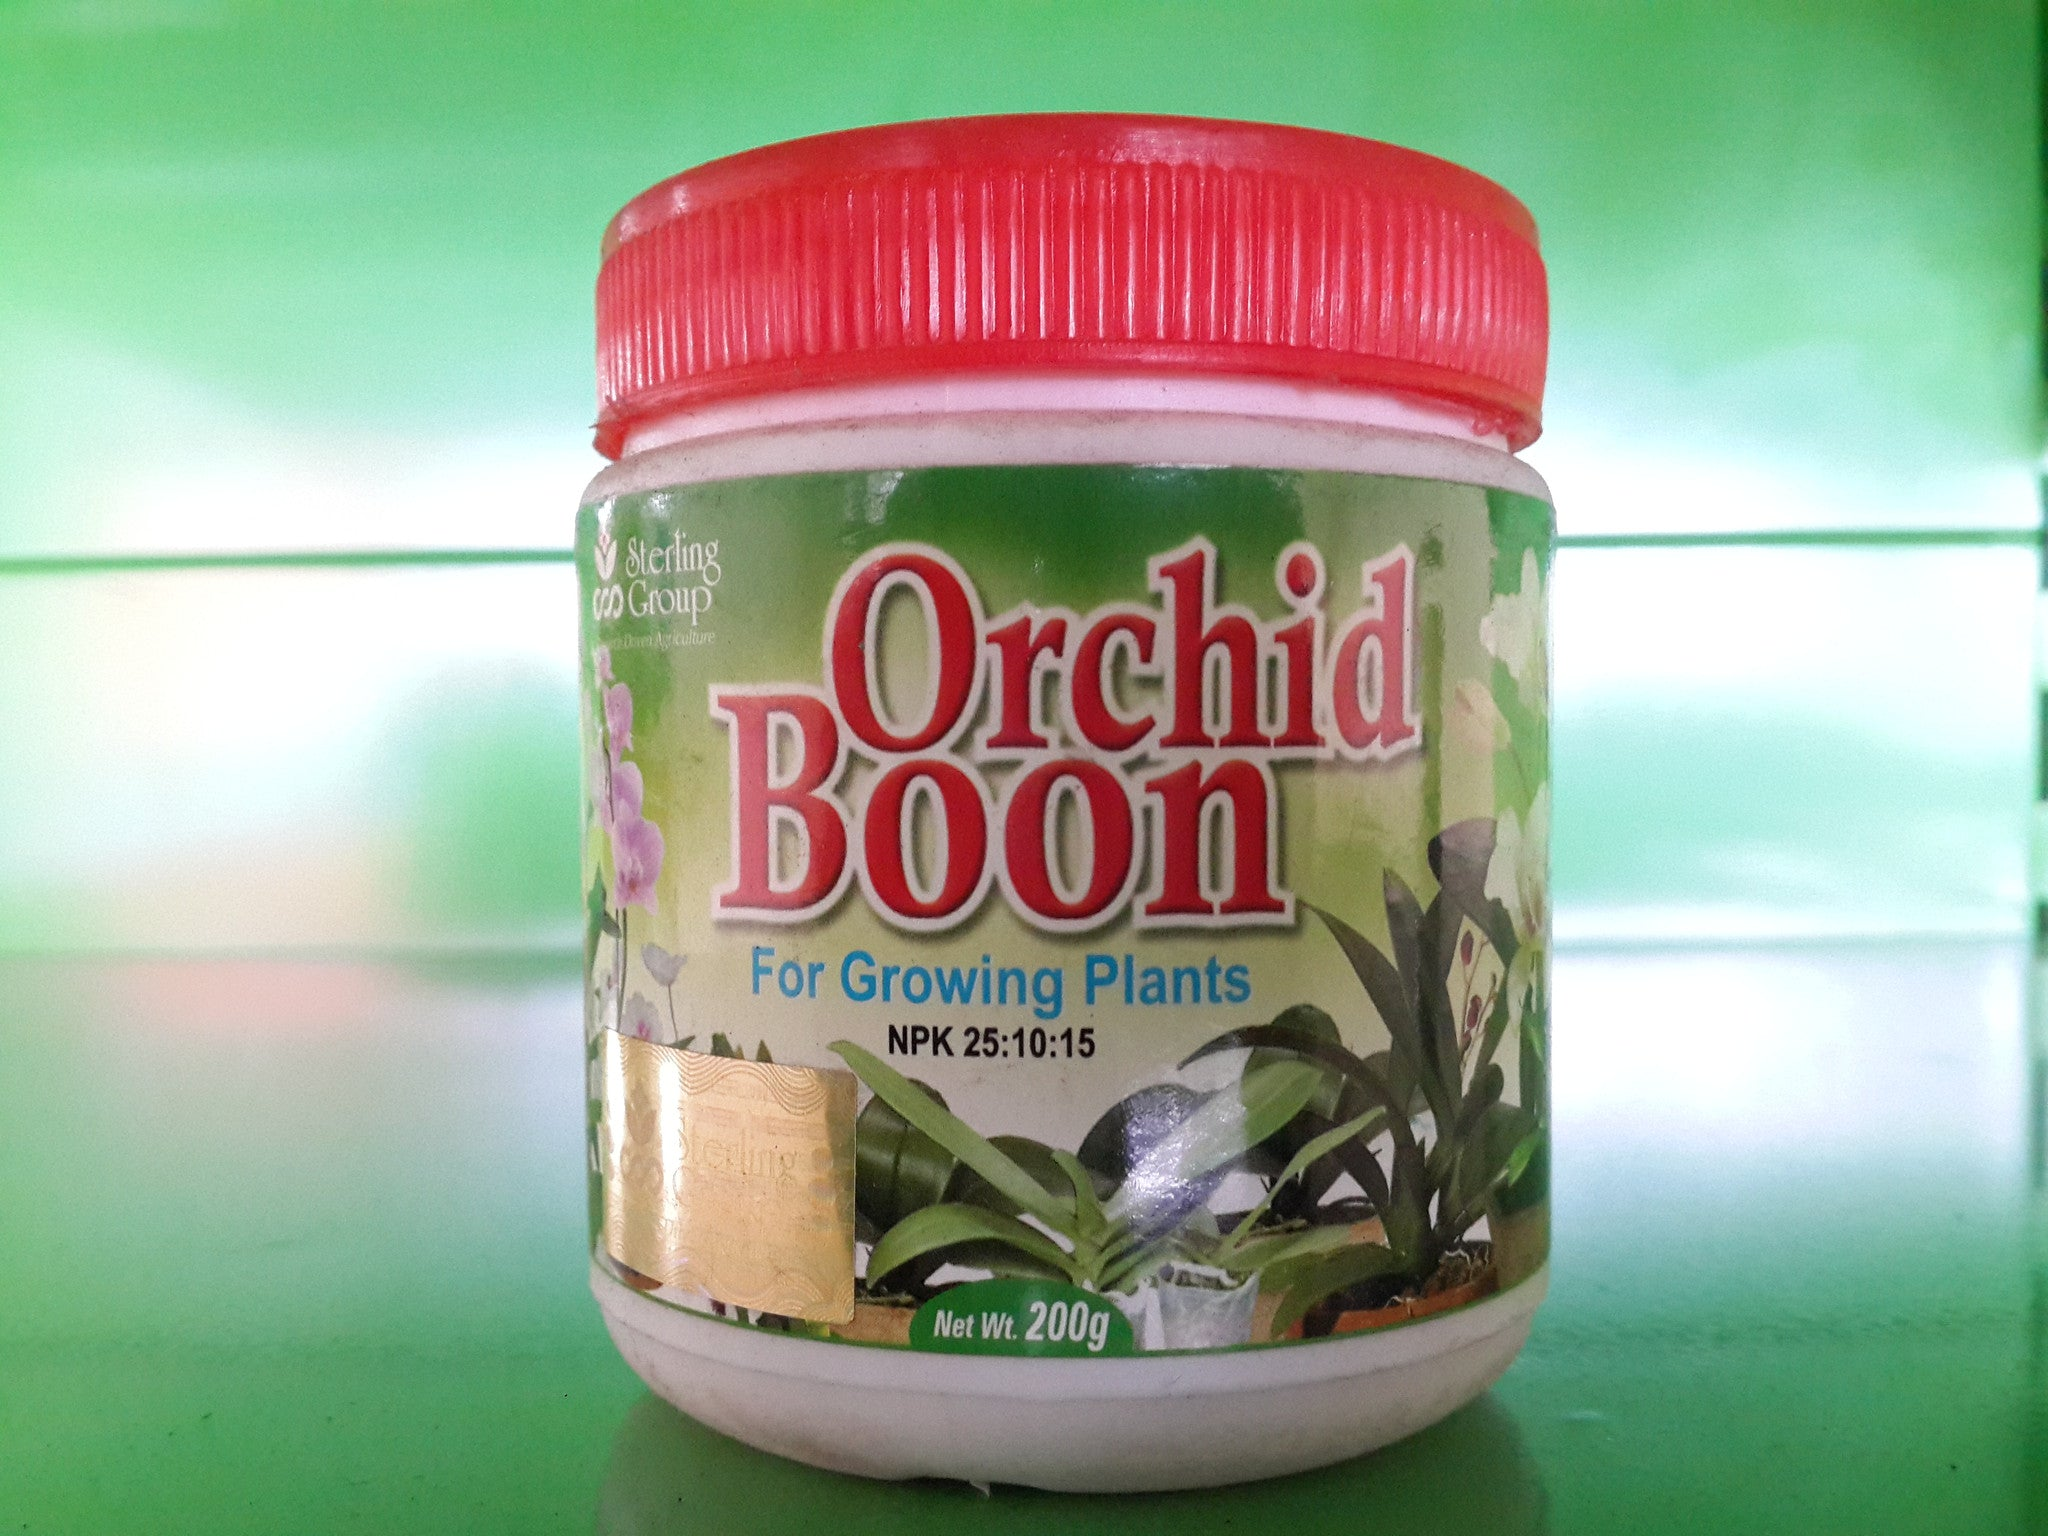 Orchid boon for growth